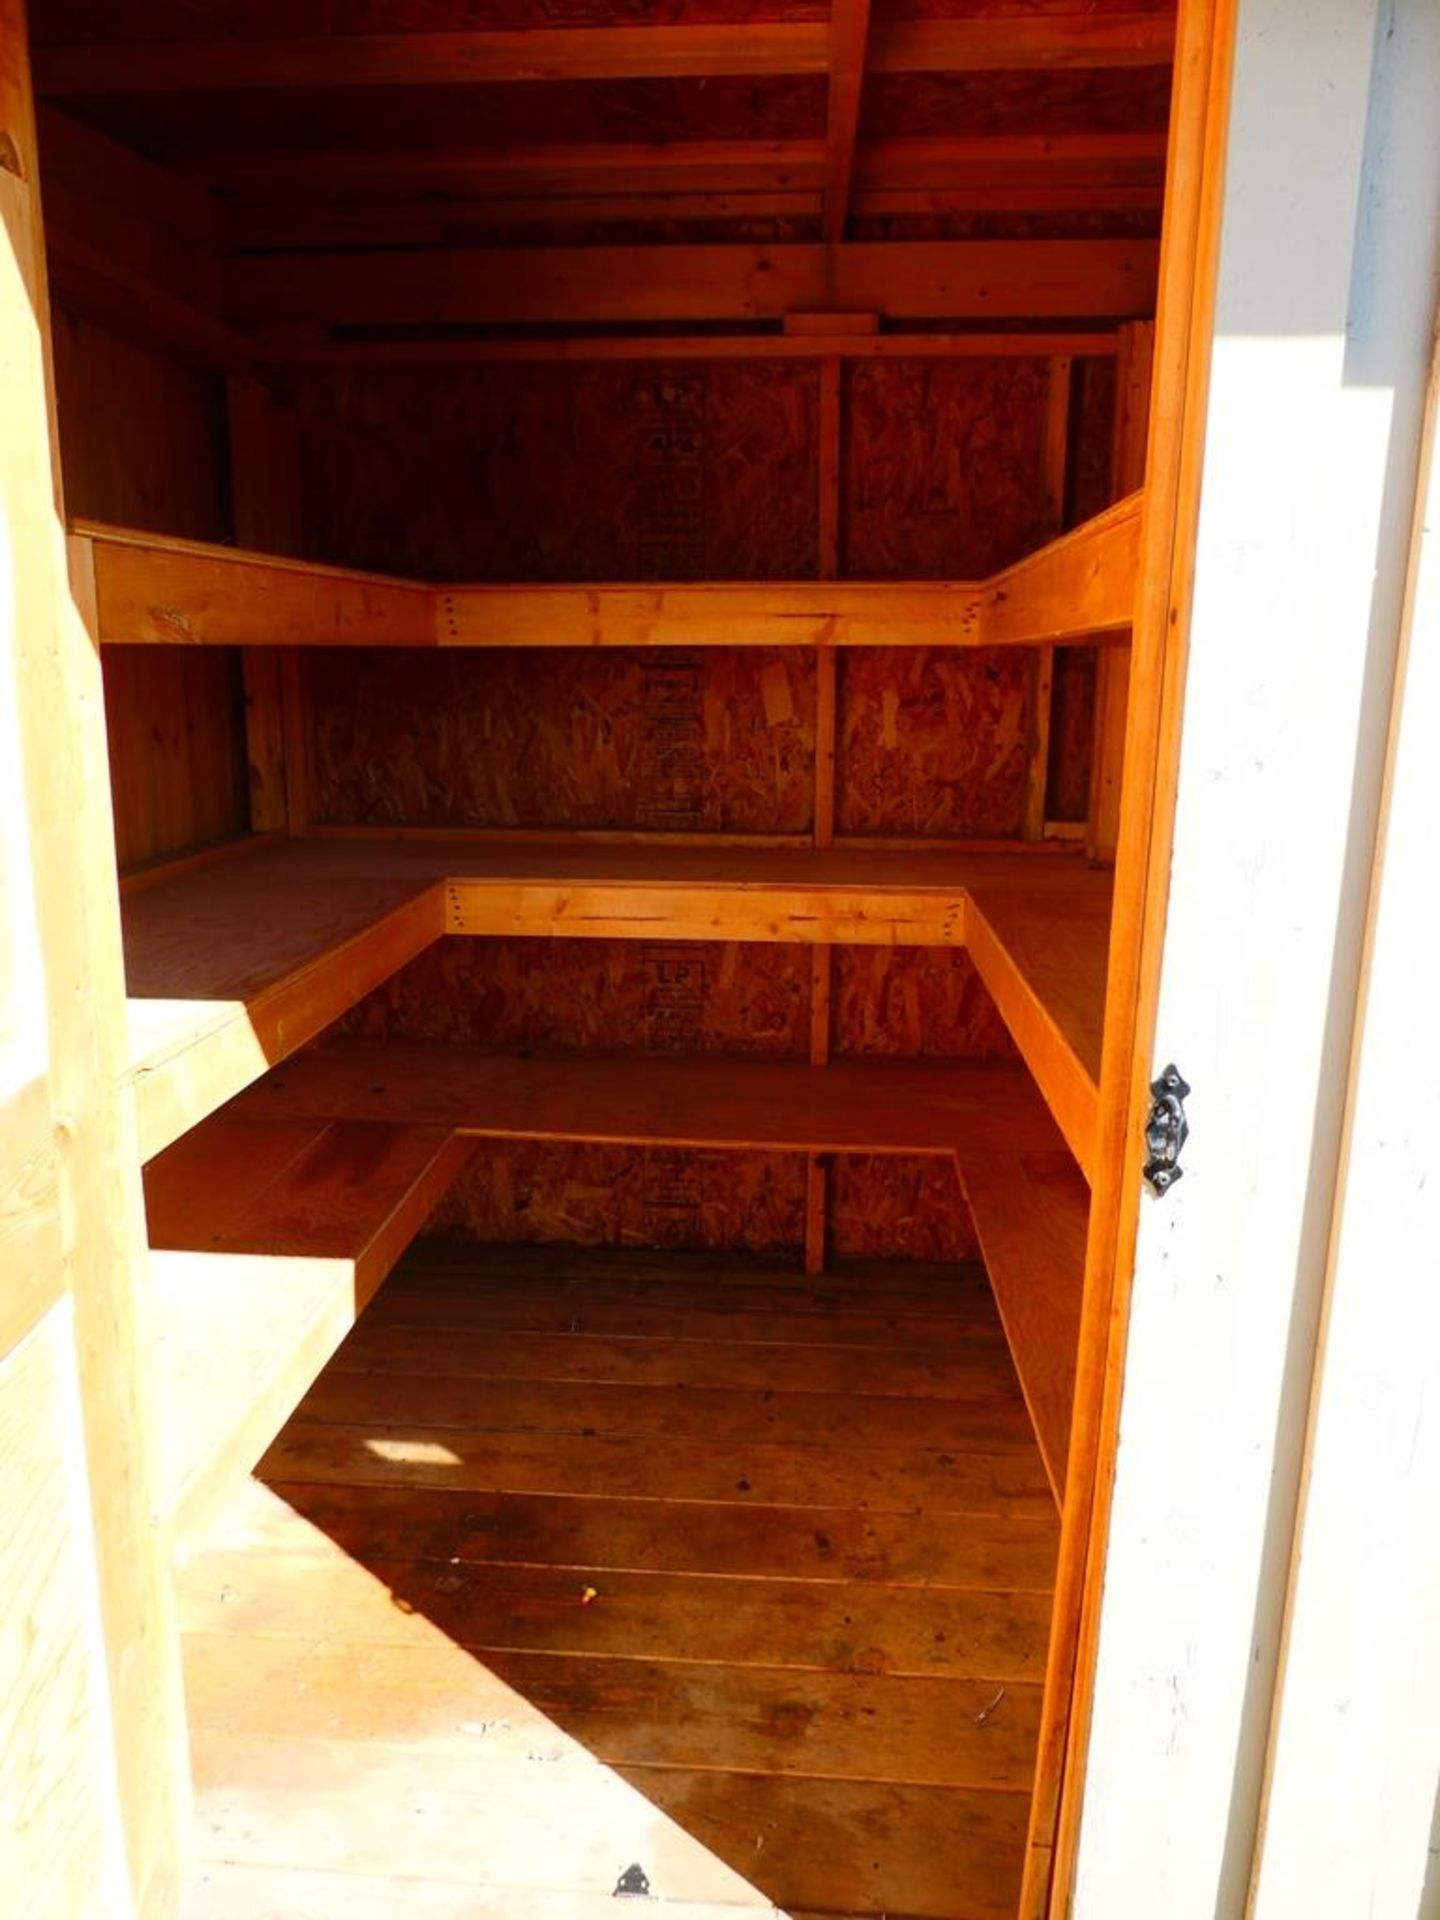 HAND CRAFTED 2 COMPARTMENT STORAGE BUILDING 6'X12' - Image 3 of 4